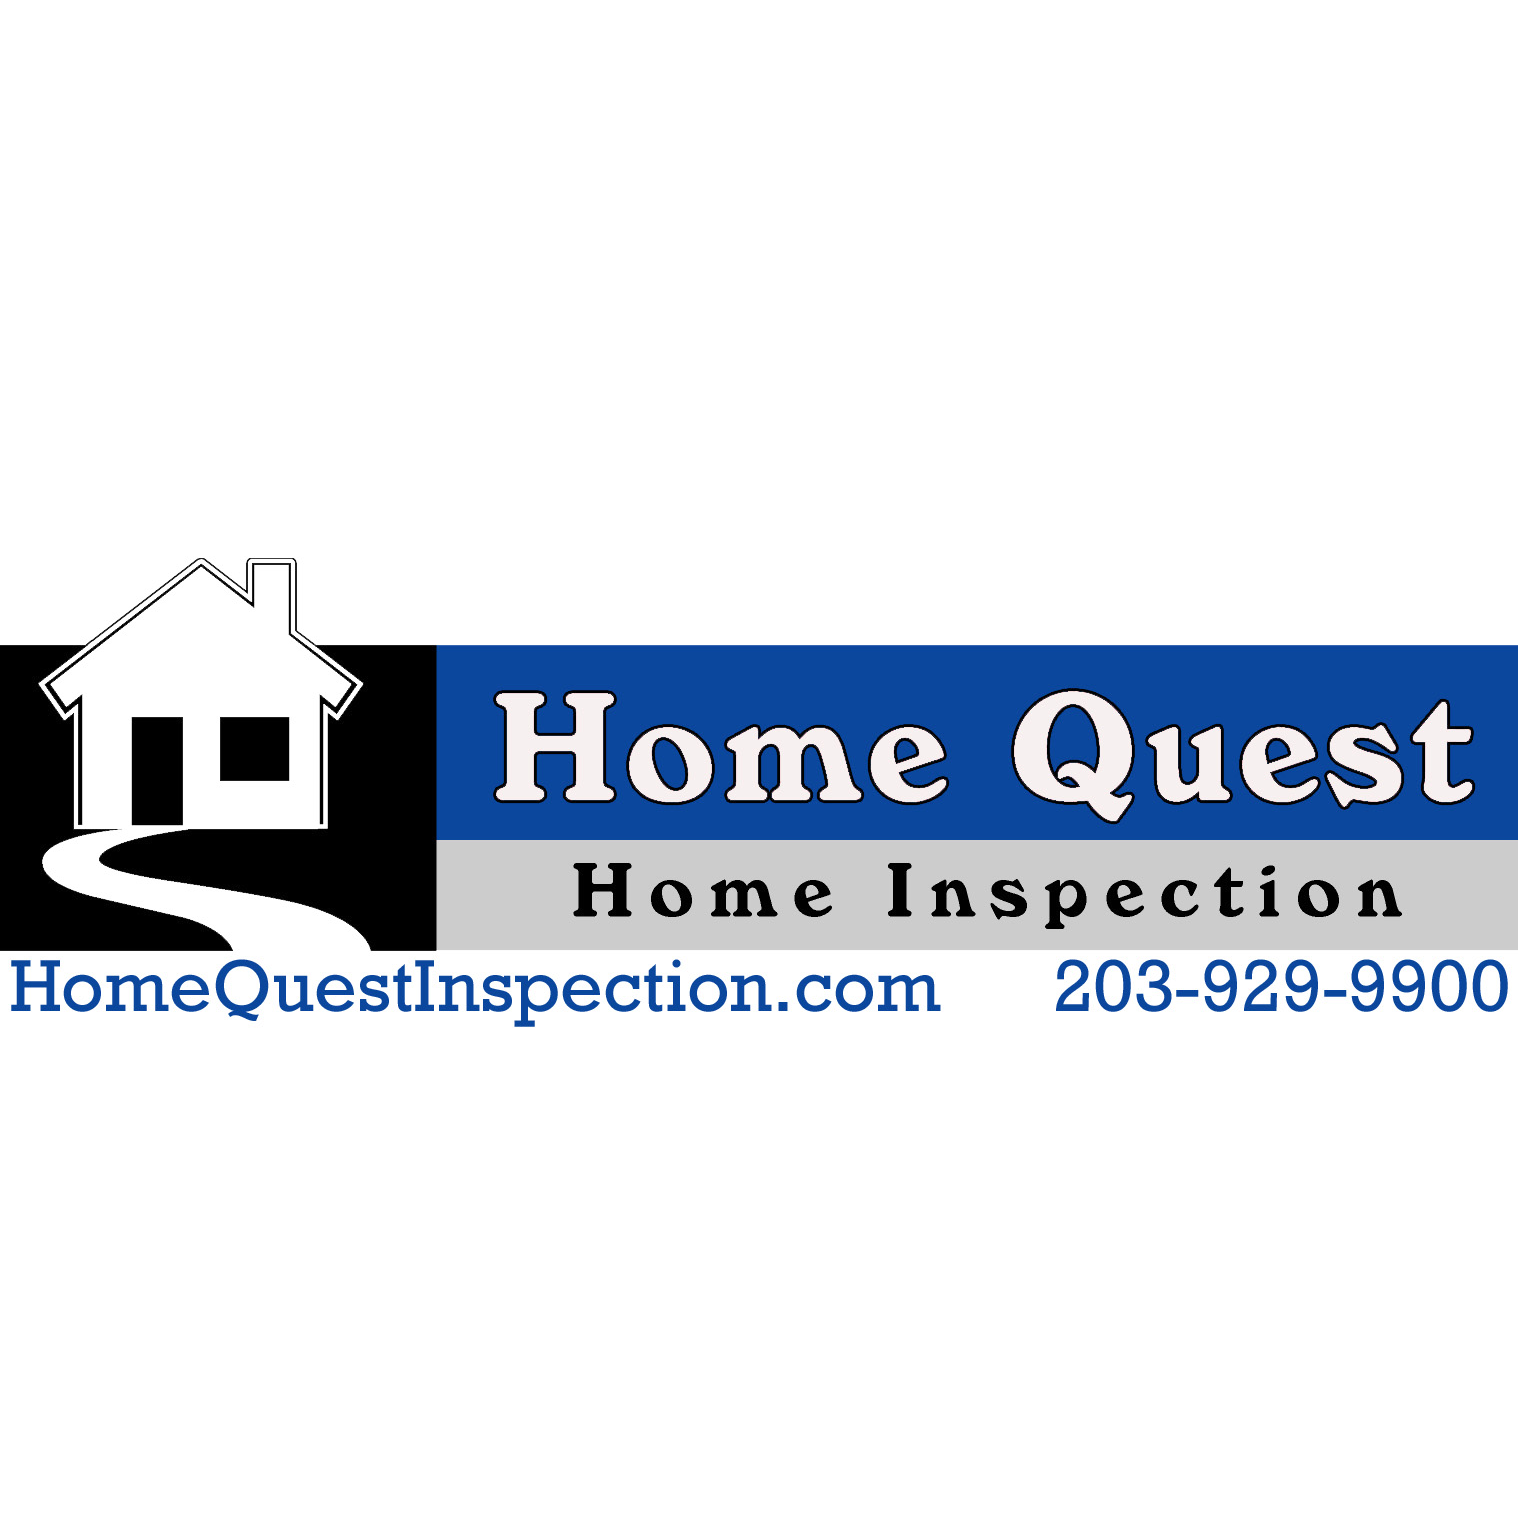 Home Quest Home Inspection